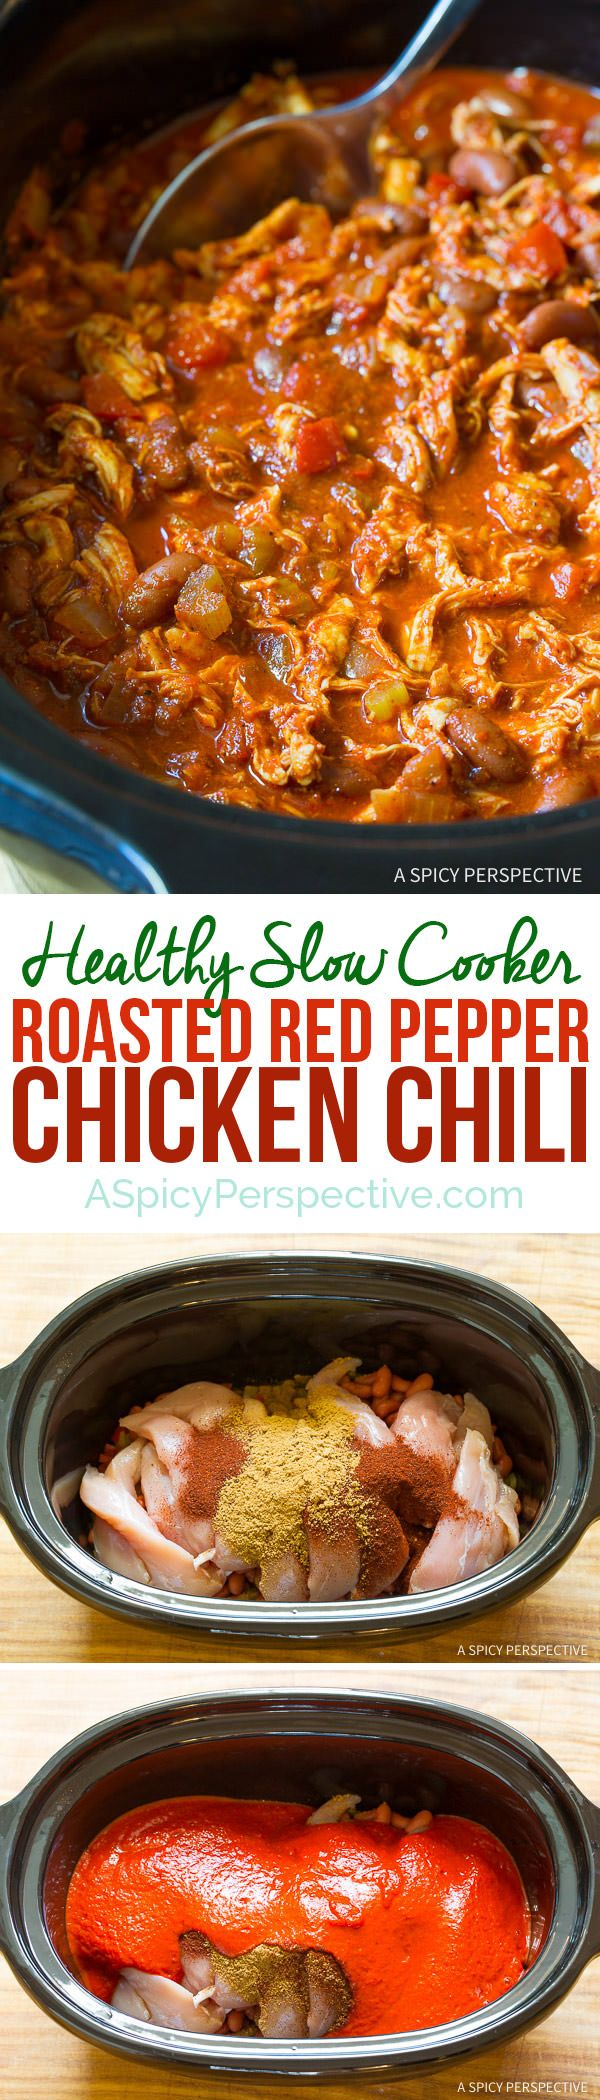 Healthy Slow Cooker Roasted Red Pepper Chicken Chili Recipe (Gluten Free & Dairy Free) | ASpicyPerpective.com